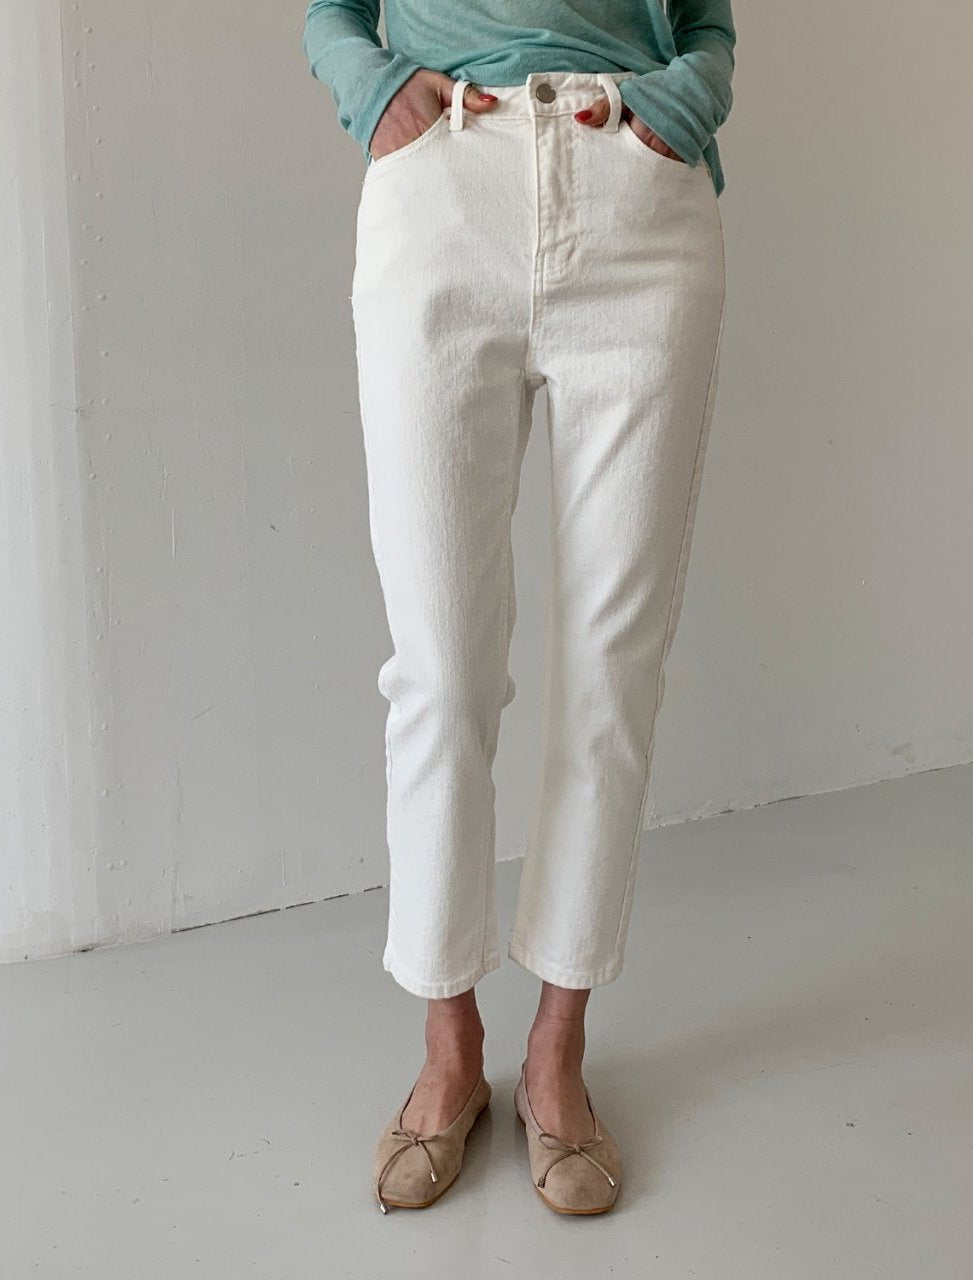 stretch White Denim Jean (s, m)